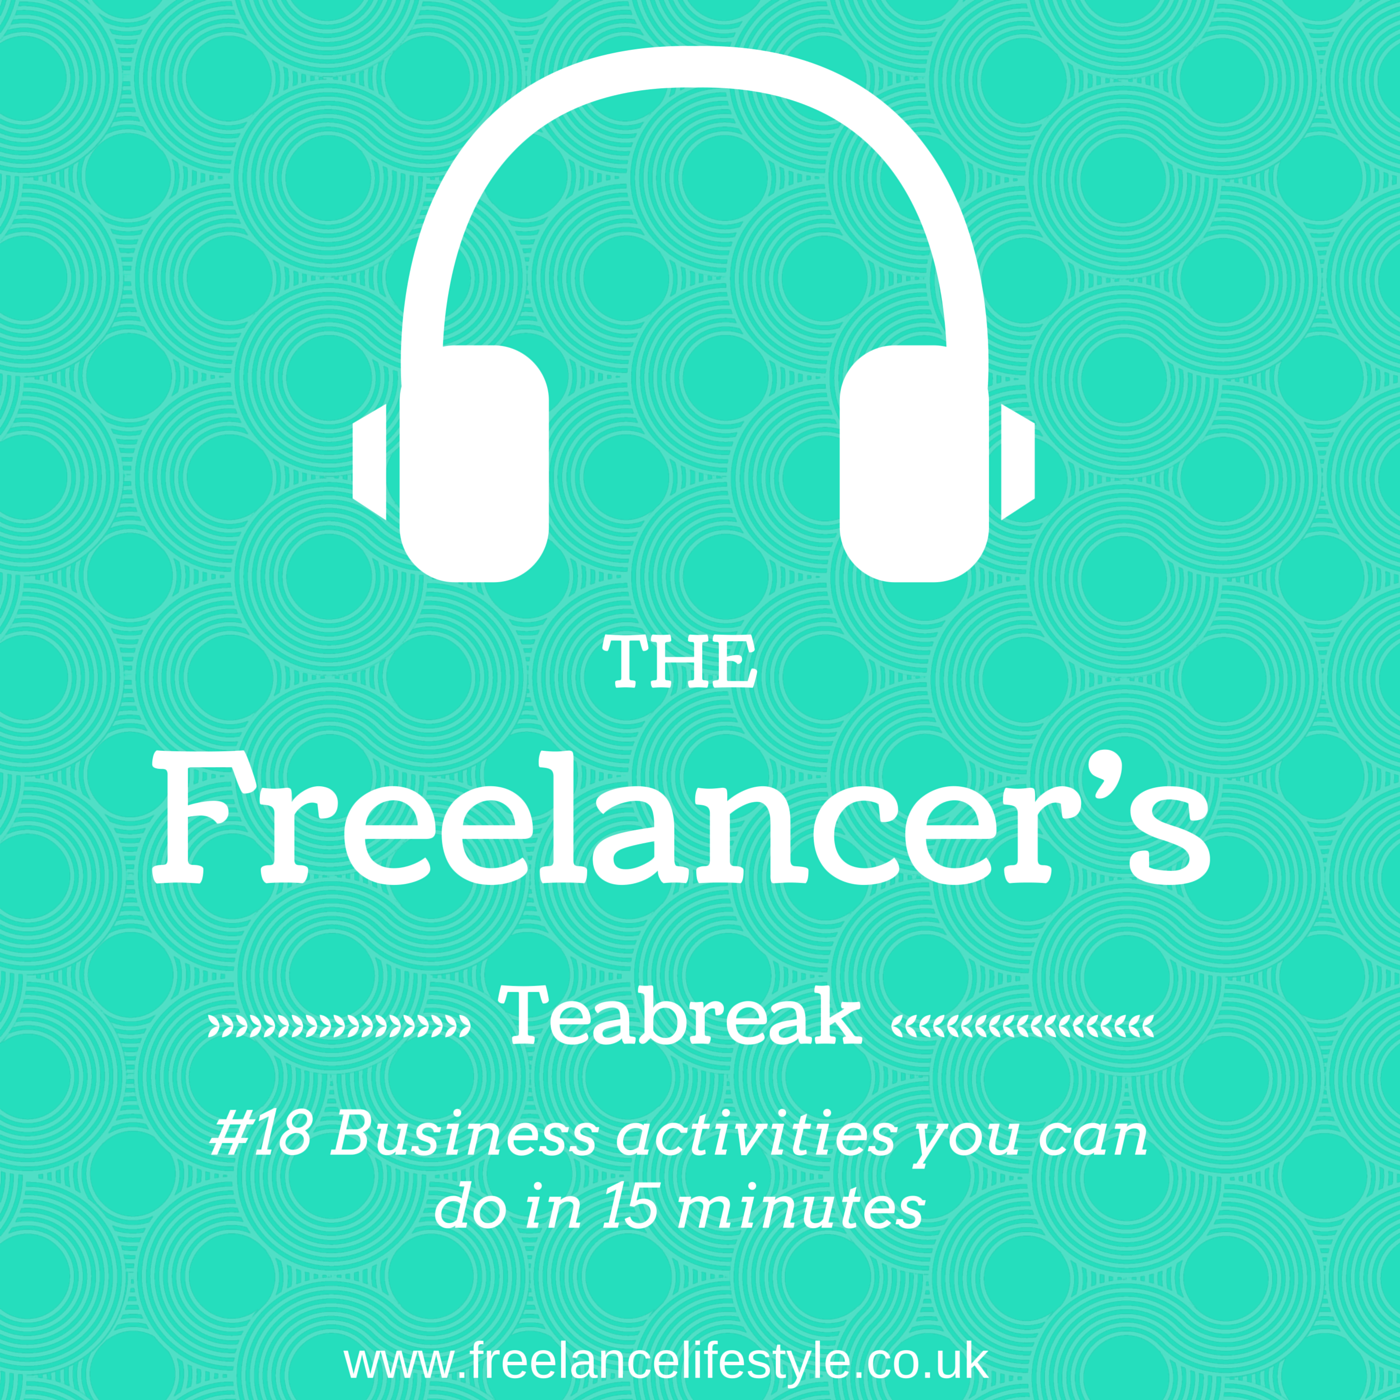 The Freelancer's Teabreak #18: Business activities you can do in 15 mins